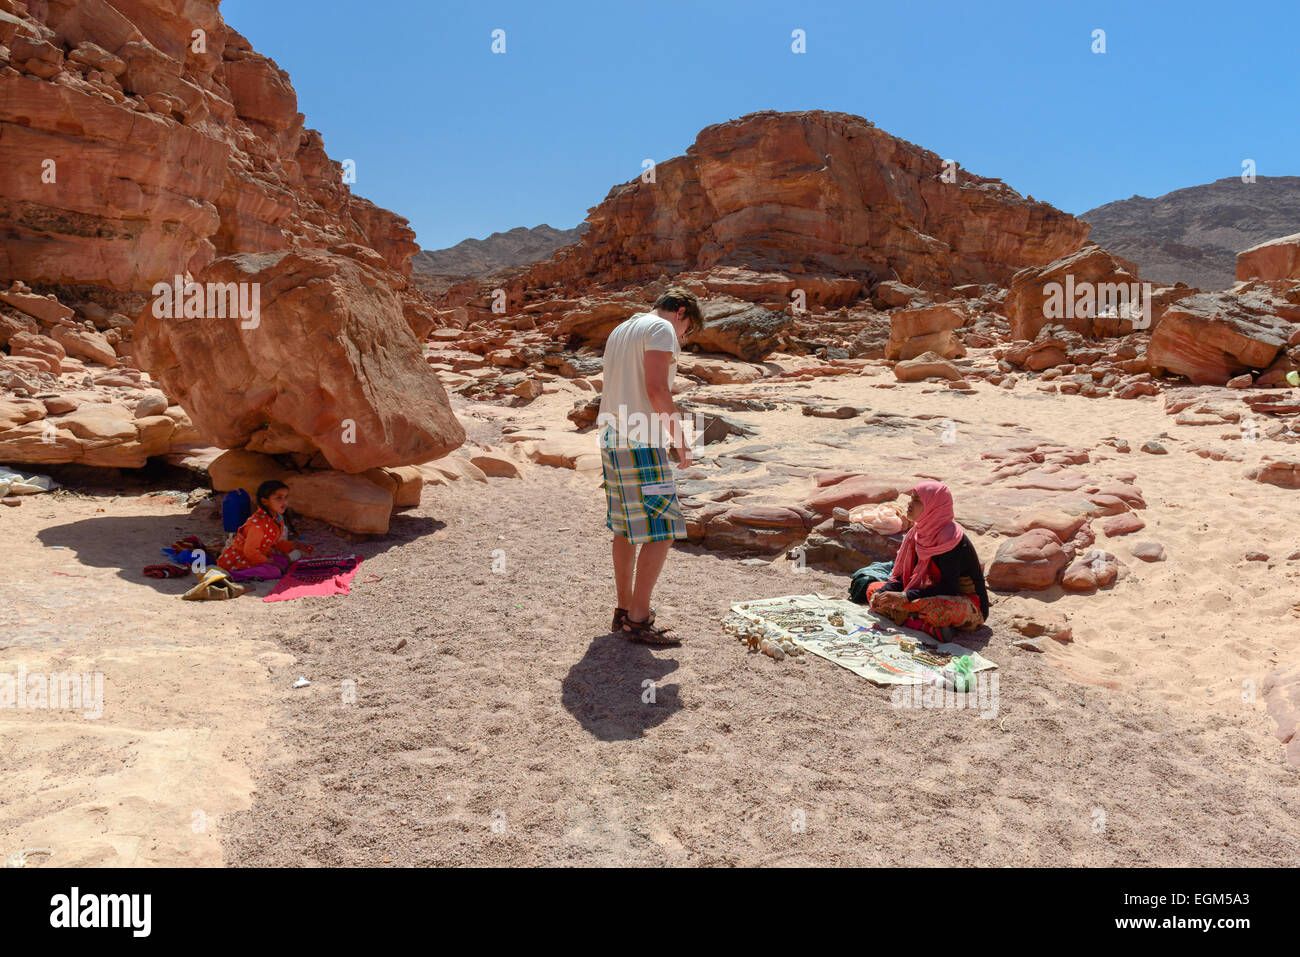 Bedouin kids selling souvenirs in Colored Canyon, Sinai, Egypt. Coloured Canyon is a rock formation and dried riverbed - Stock Image